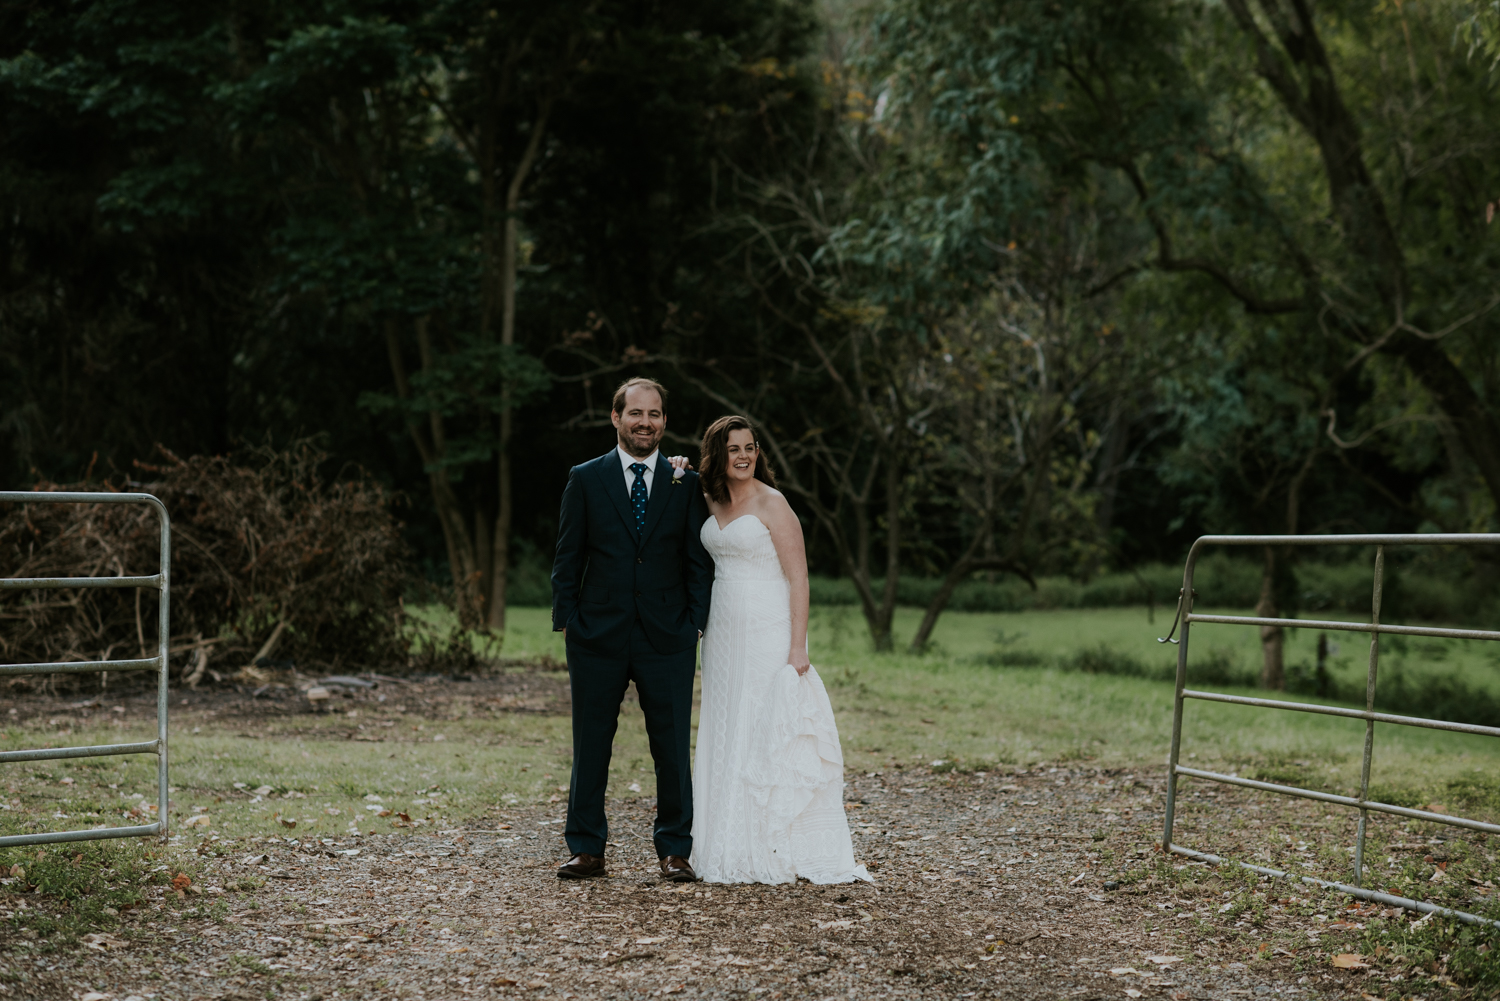 Brisbane Wedding Photographer | Bundaleer Rainforest Gardens-55.jpg